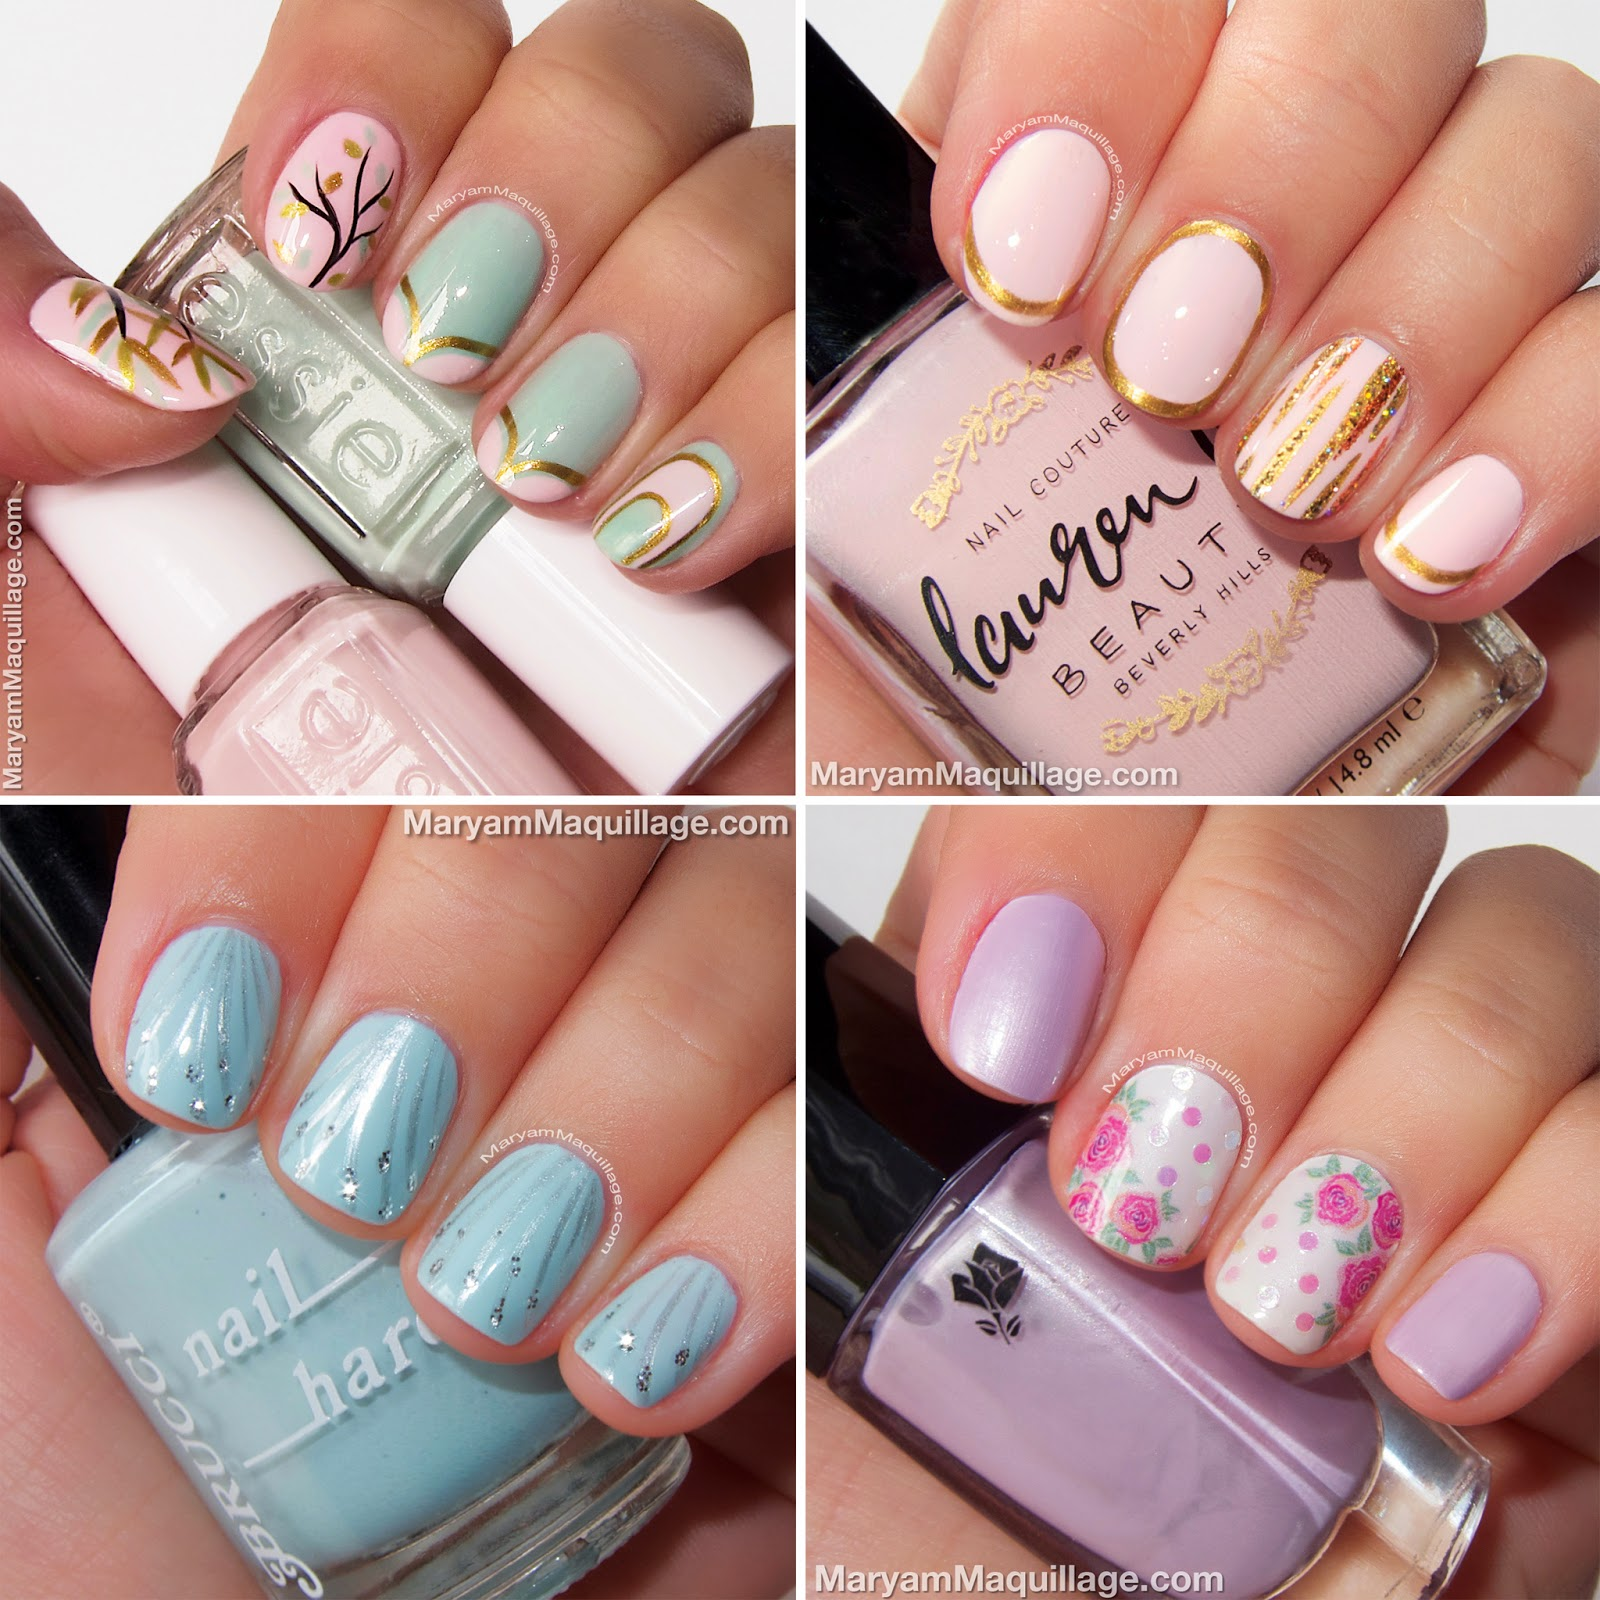 Maryam Maquillage: Spring Beauty Trend: Pastel NailArt